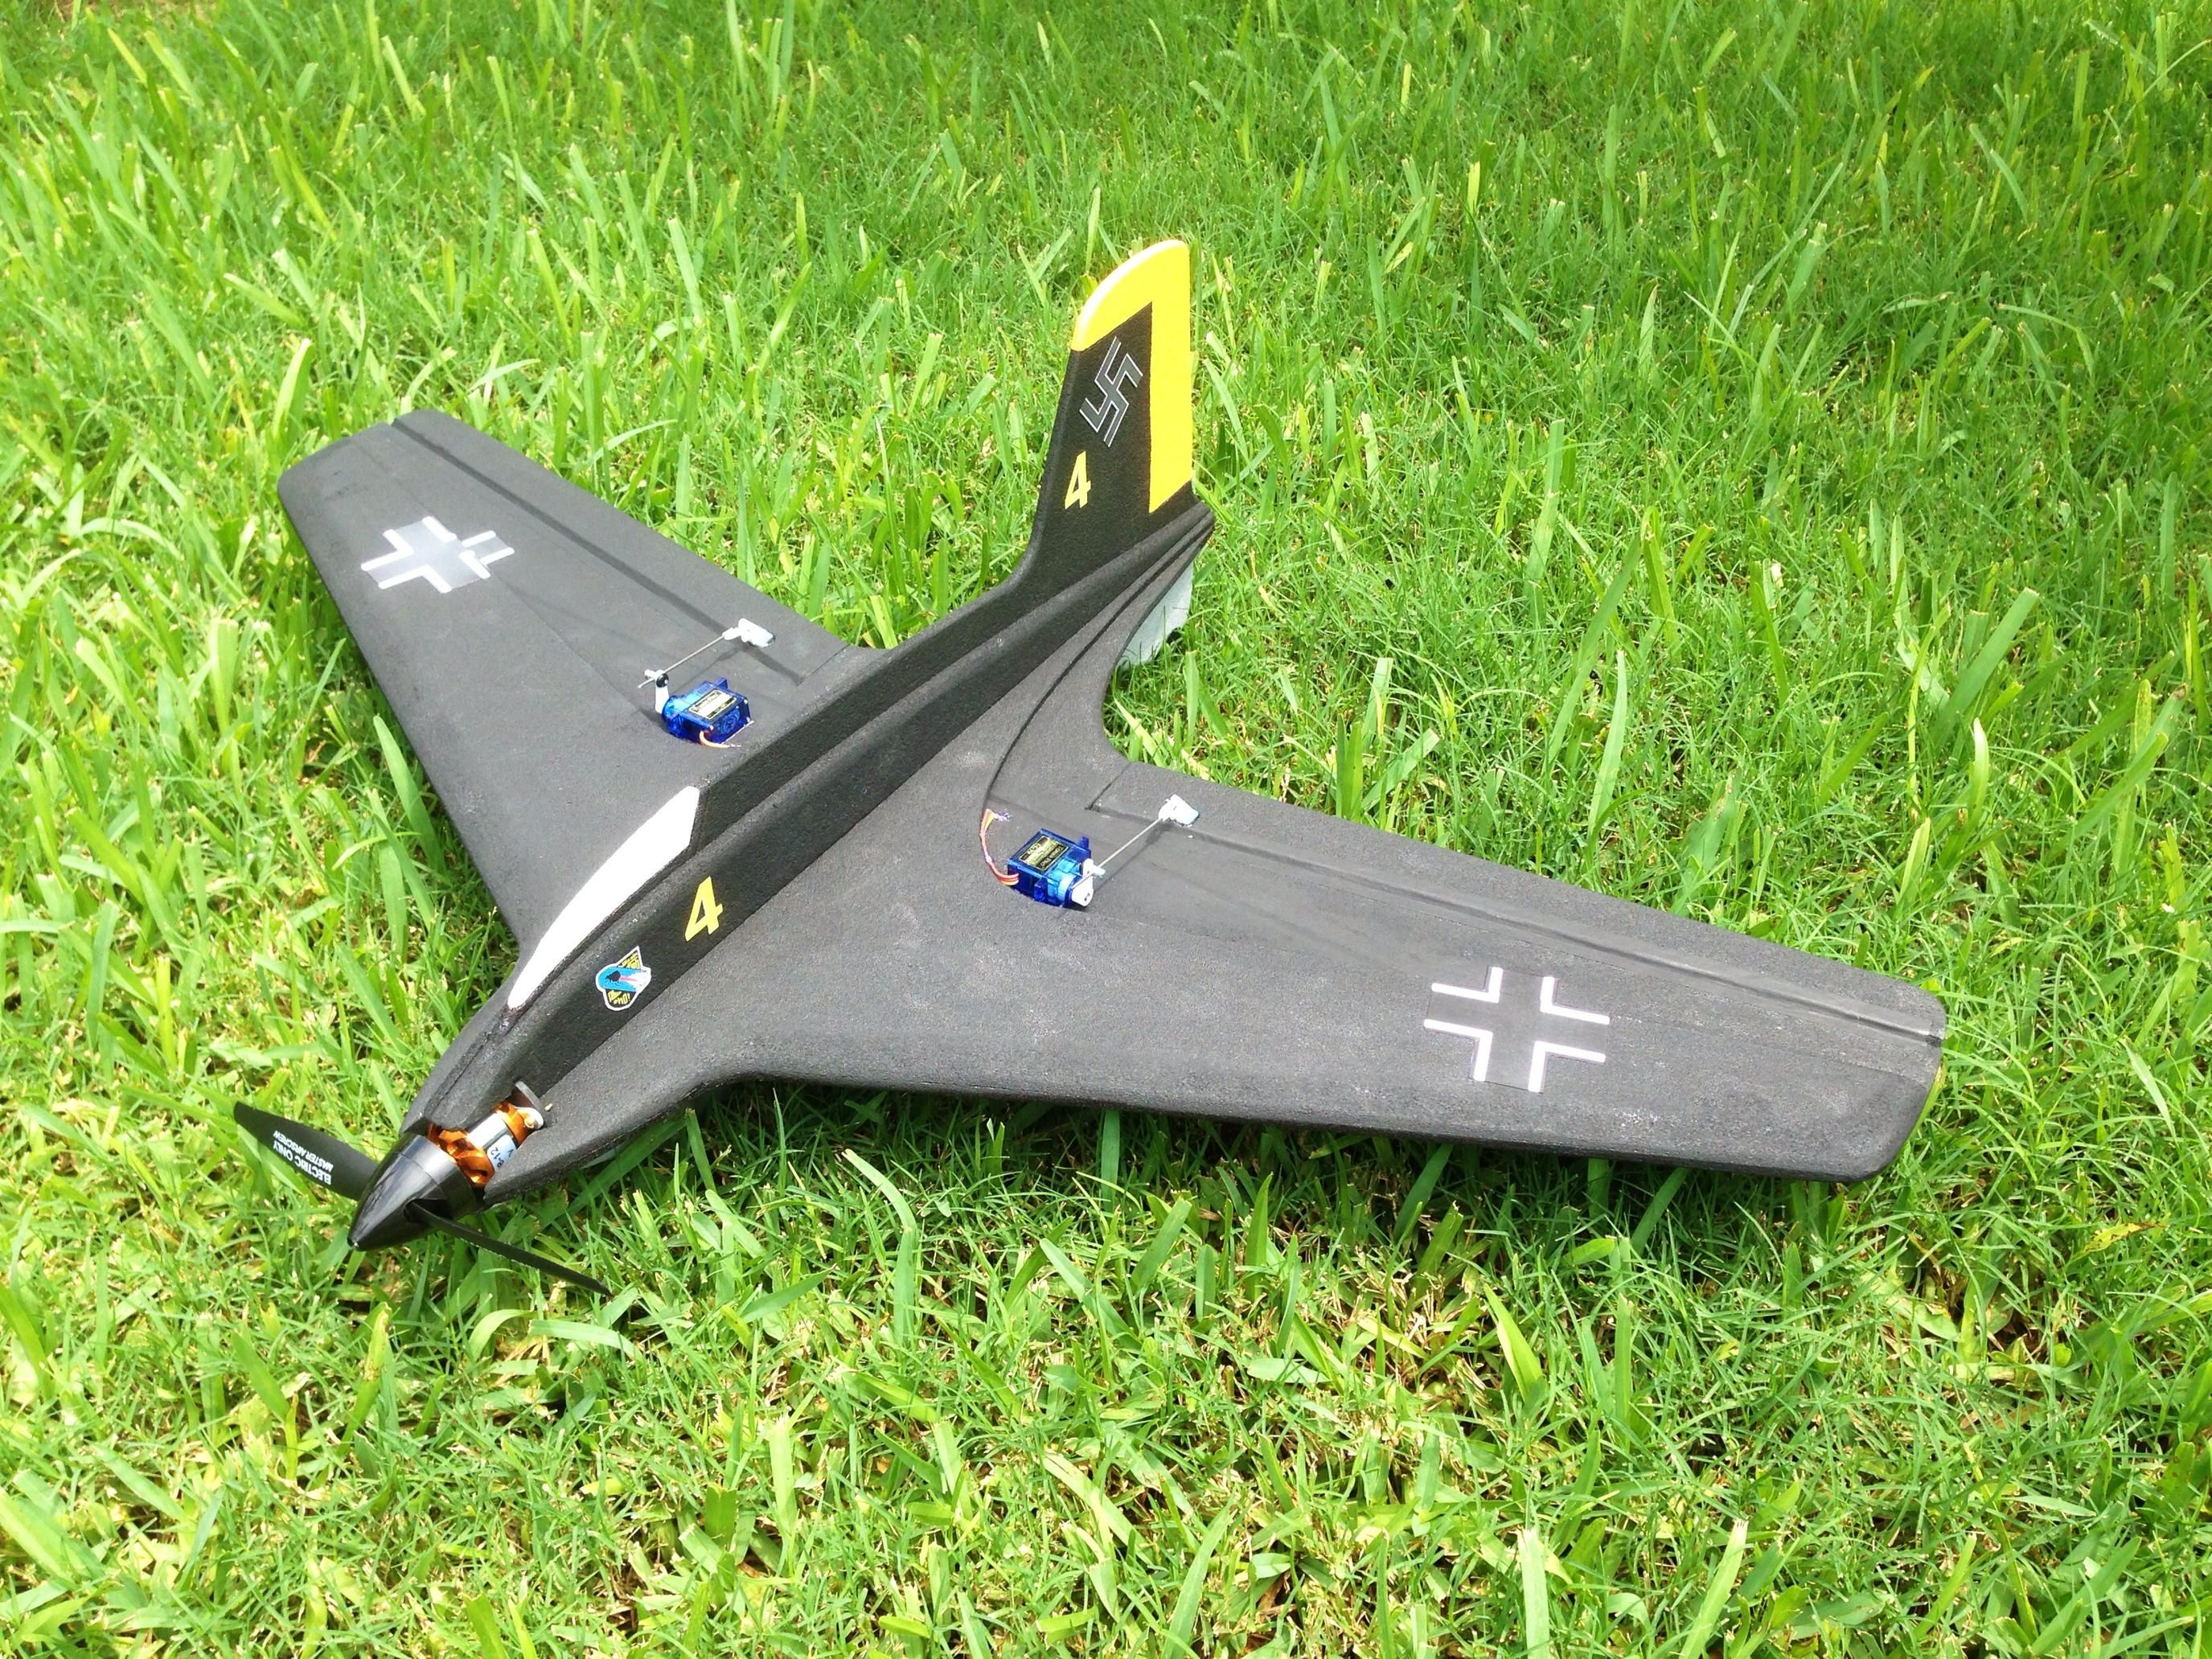 SEMFF WWII combat planes 31 designs with plans and video